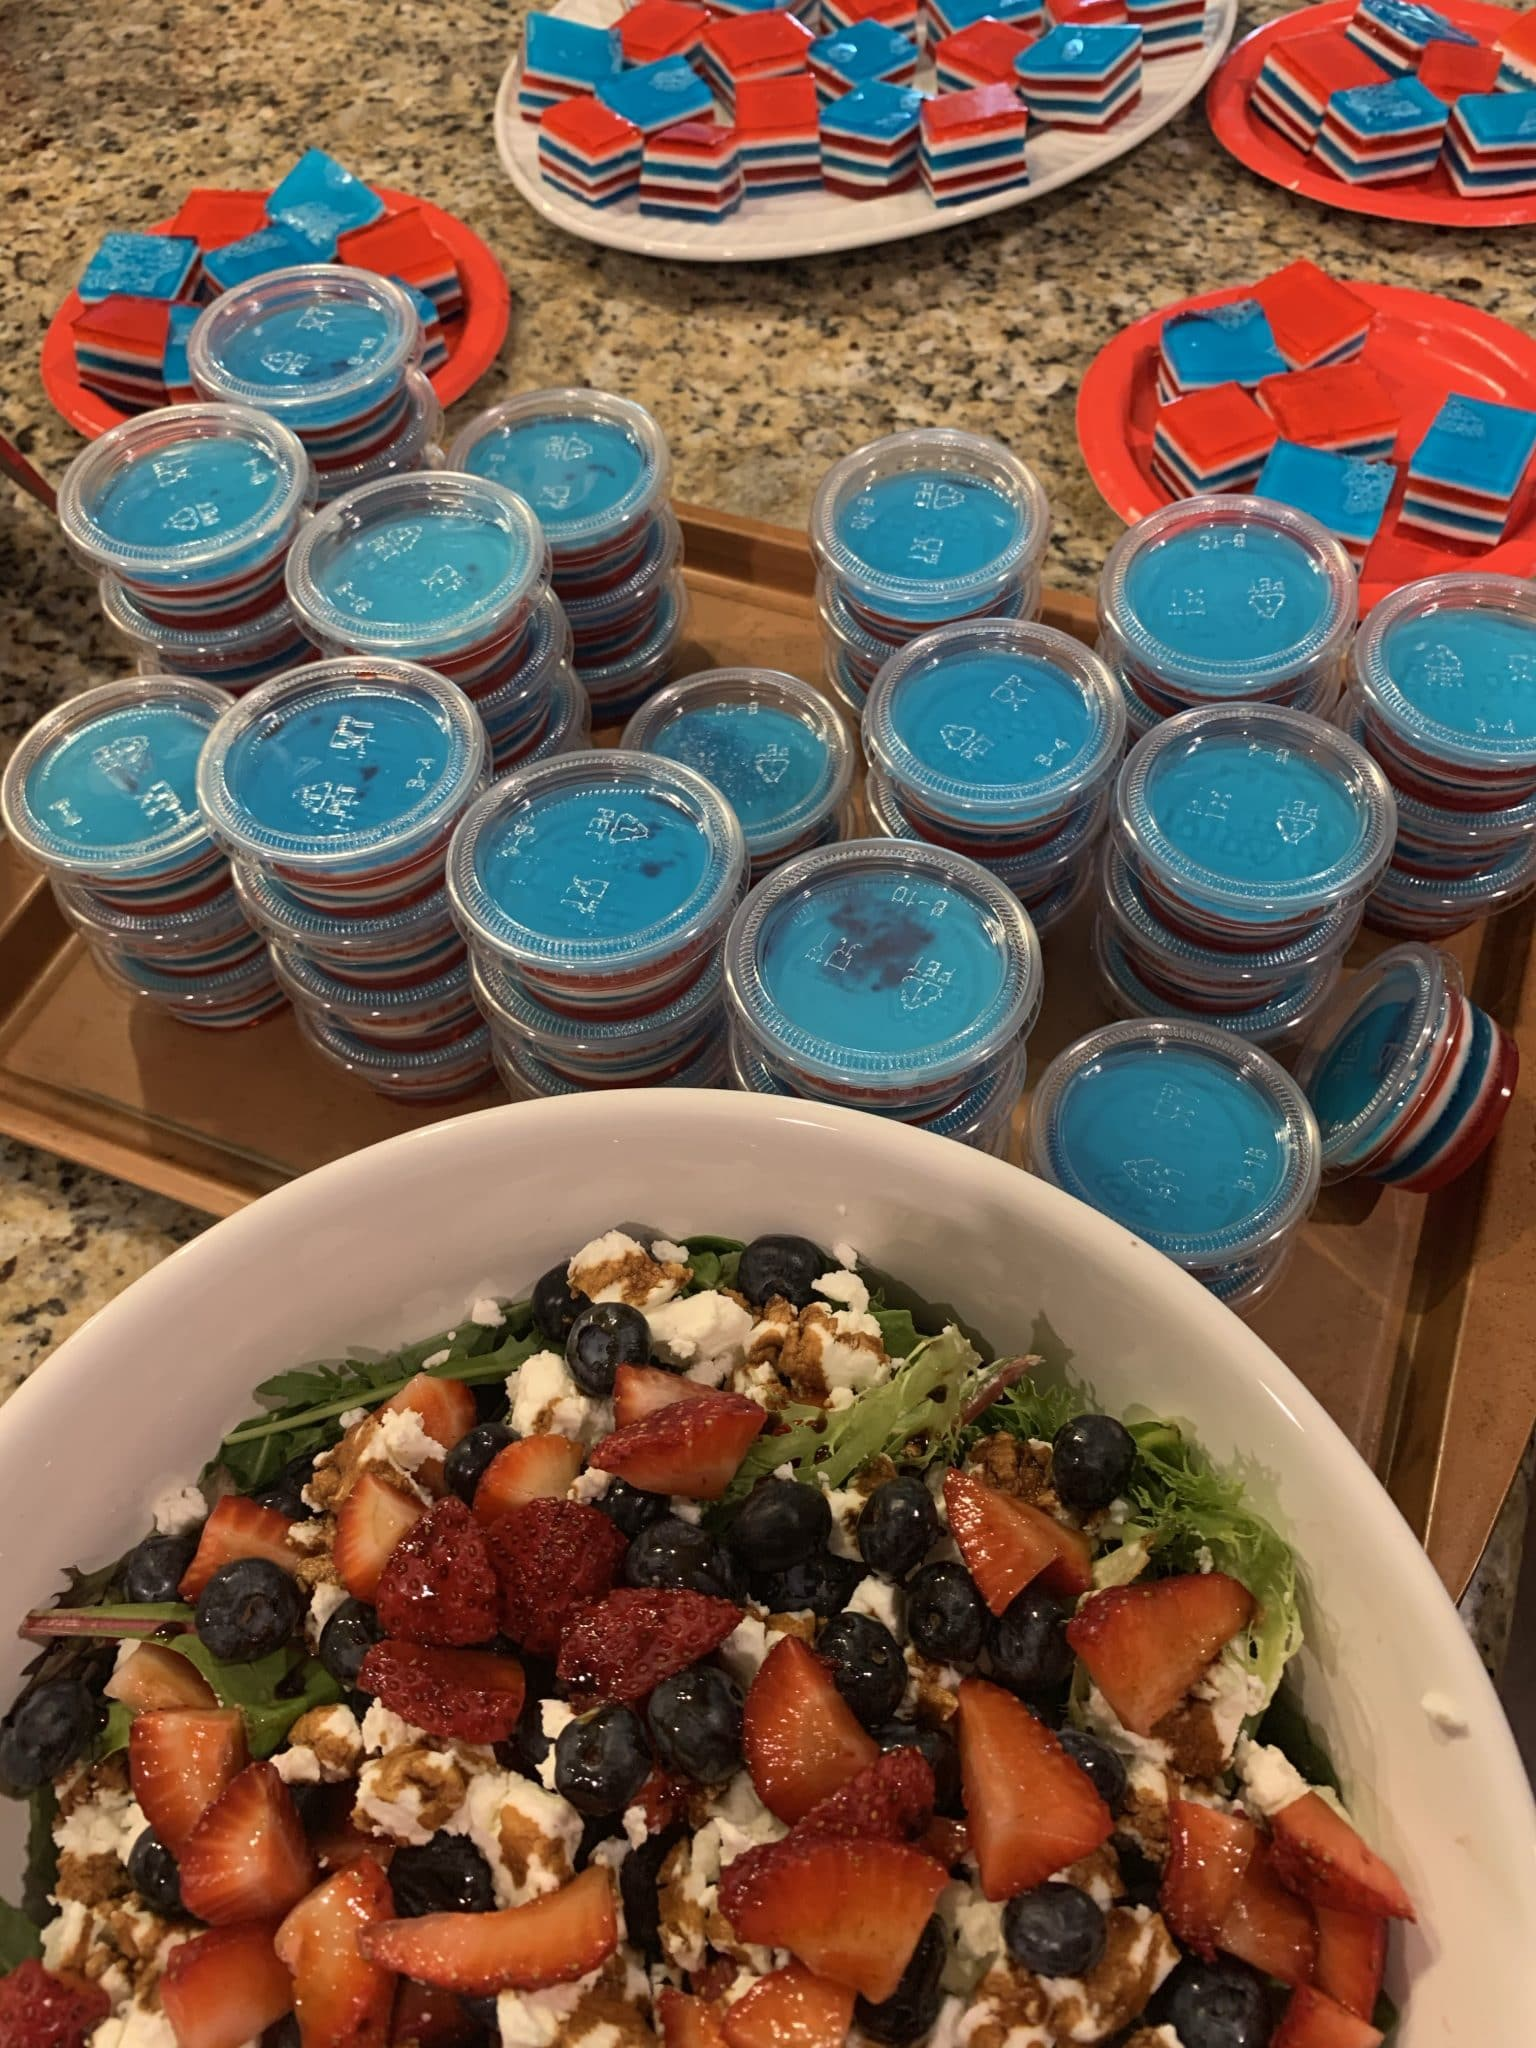 July 4th food, Stilettos and Diapers, Jello Shots